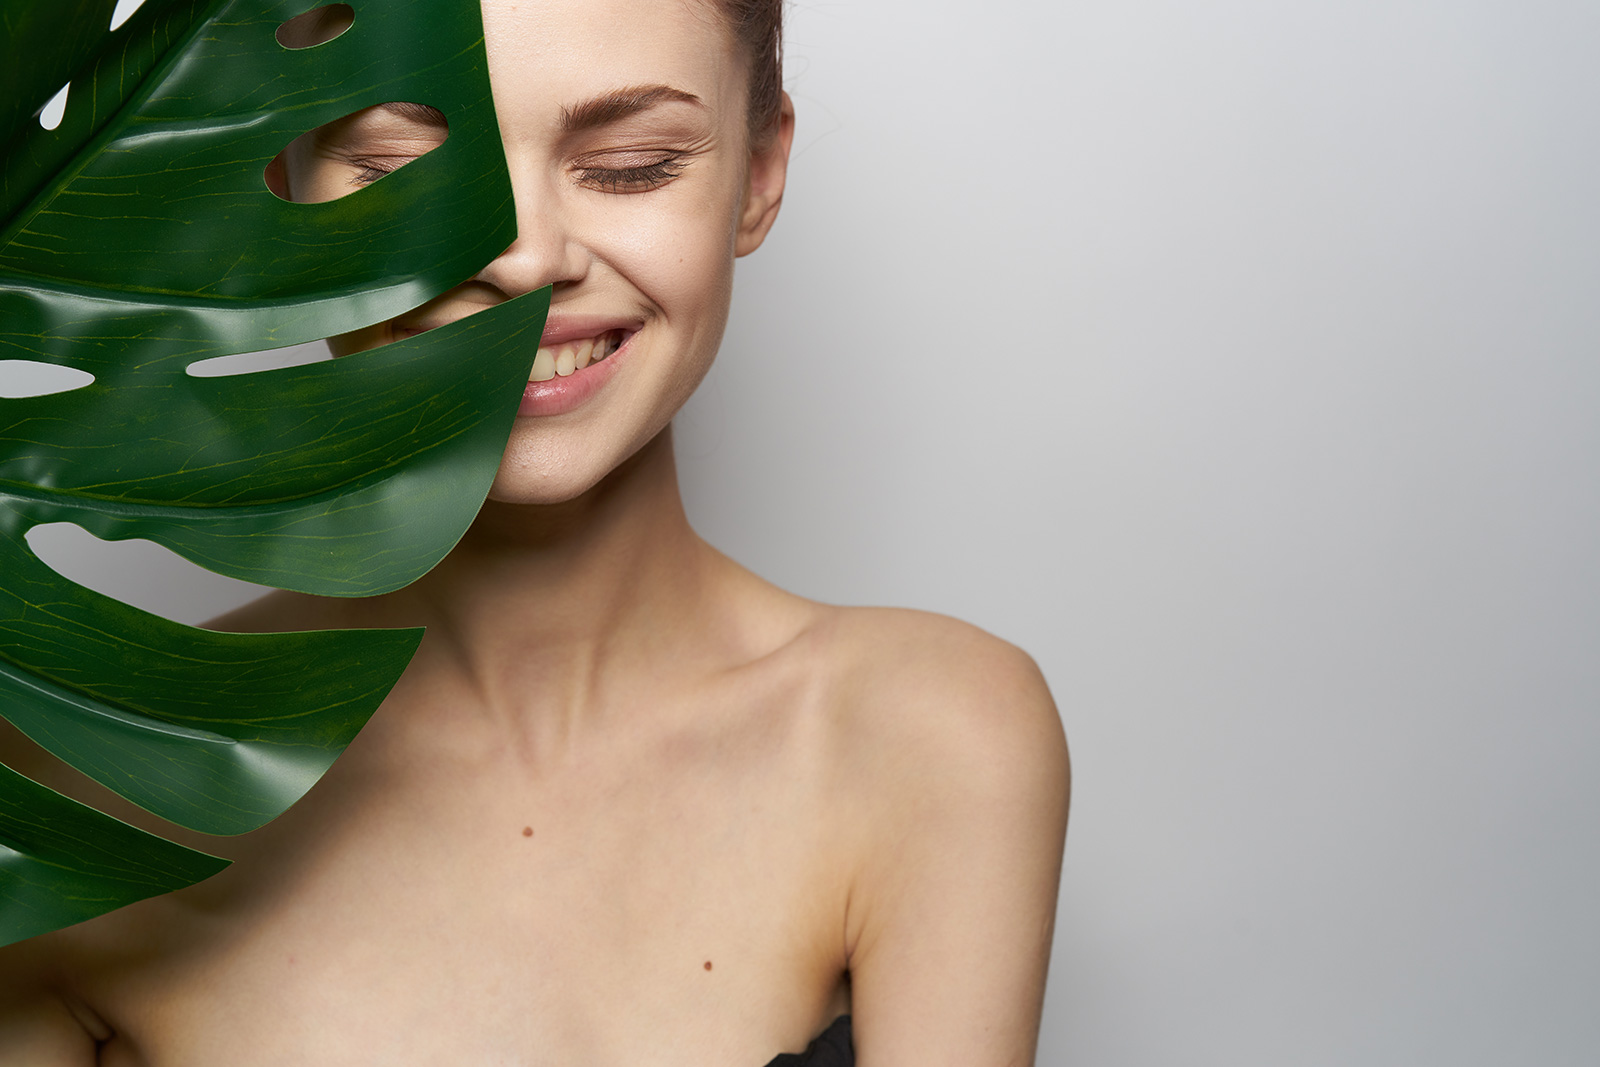 young-smiling-woman-spa